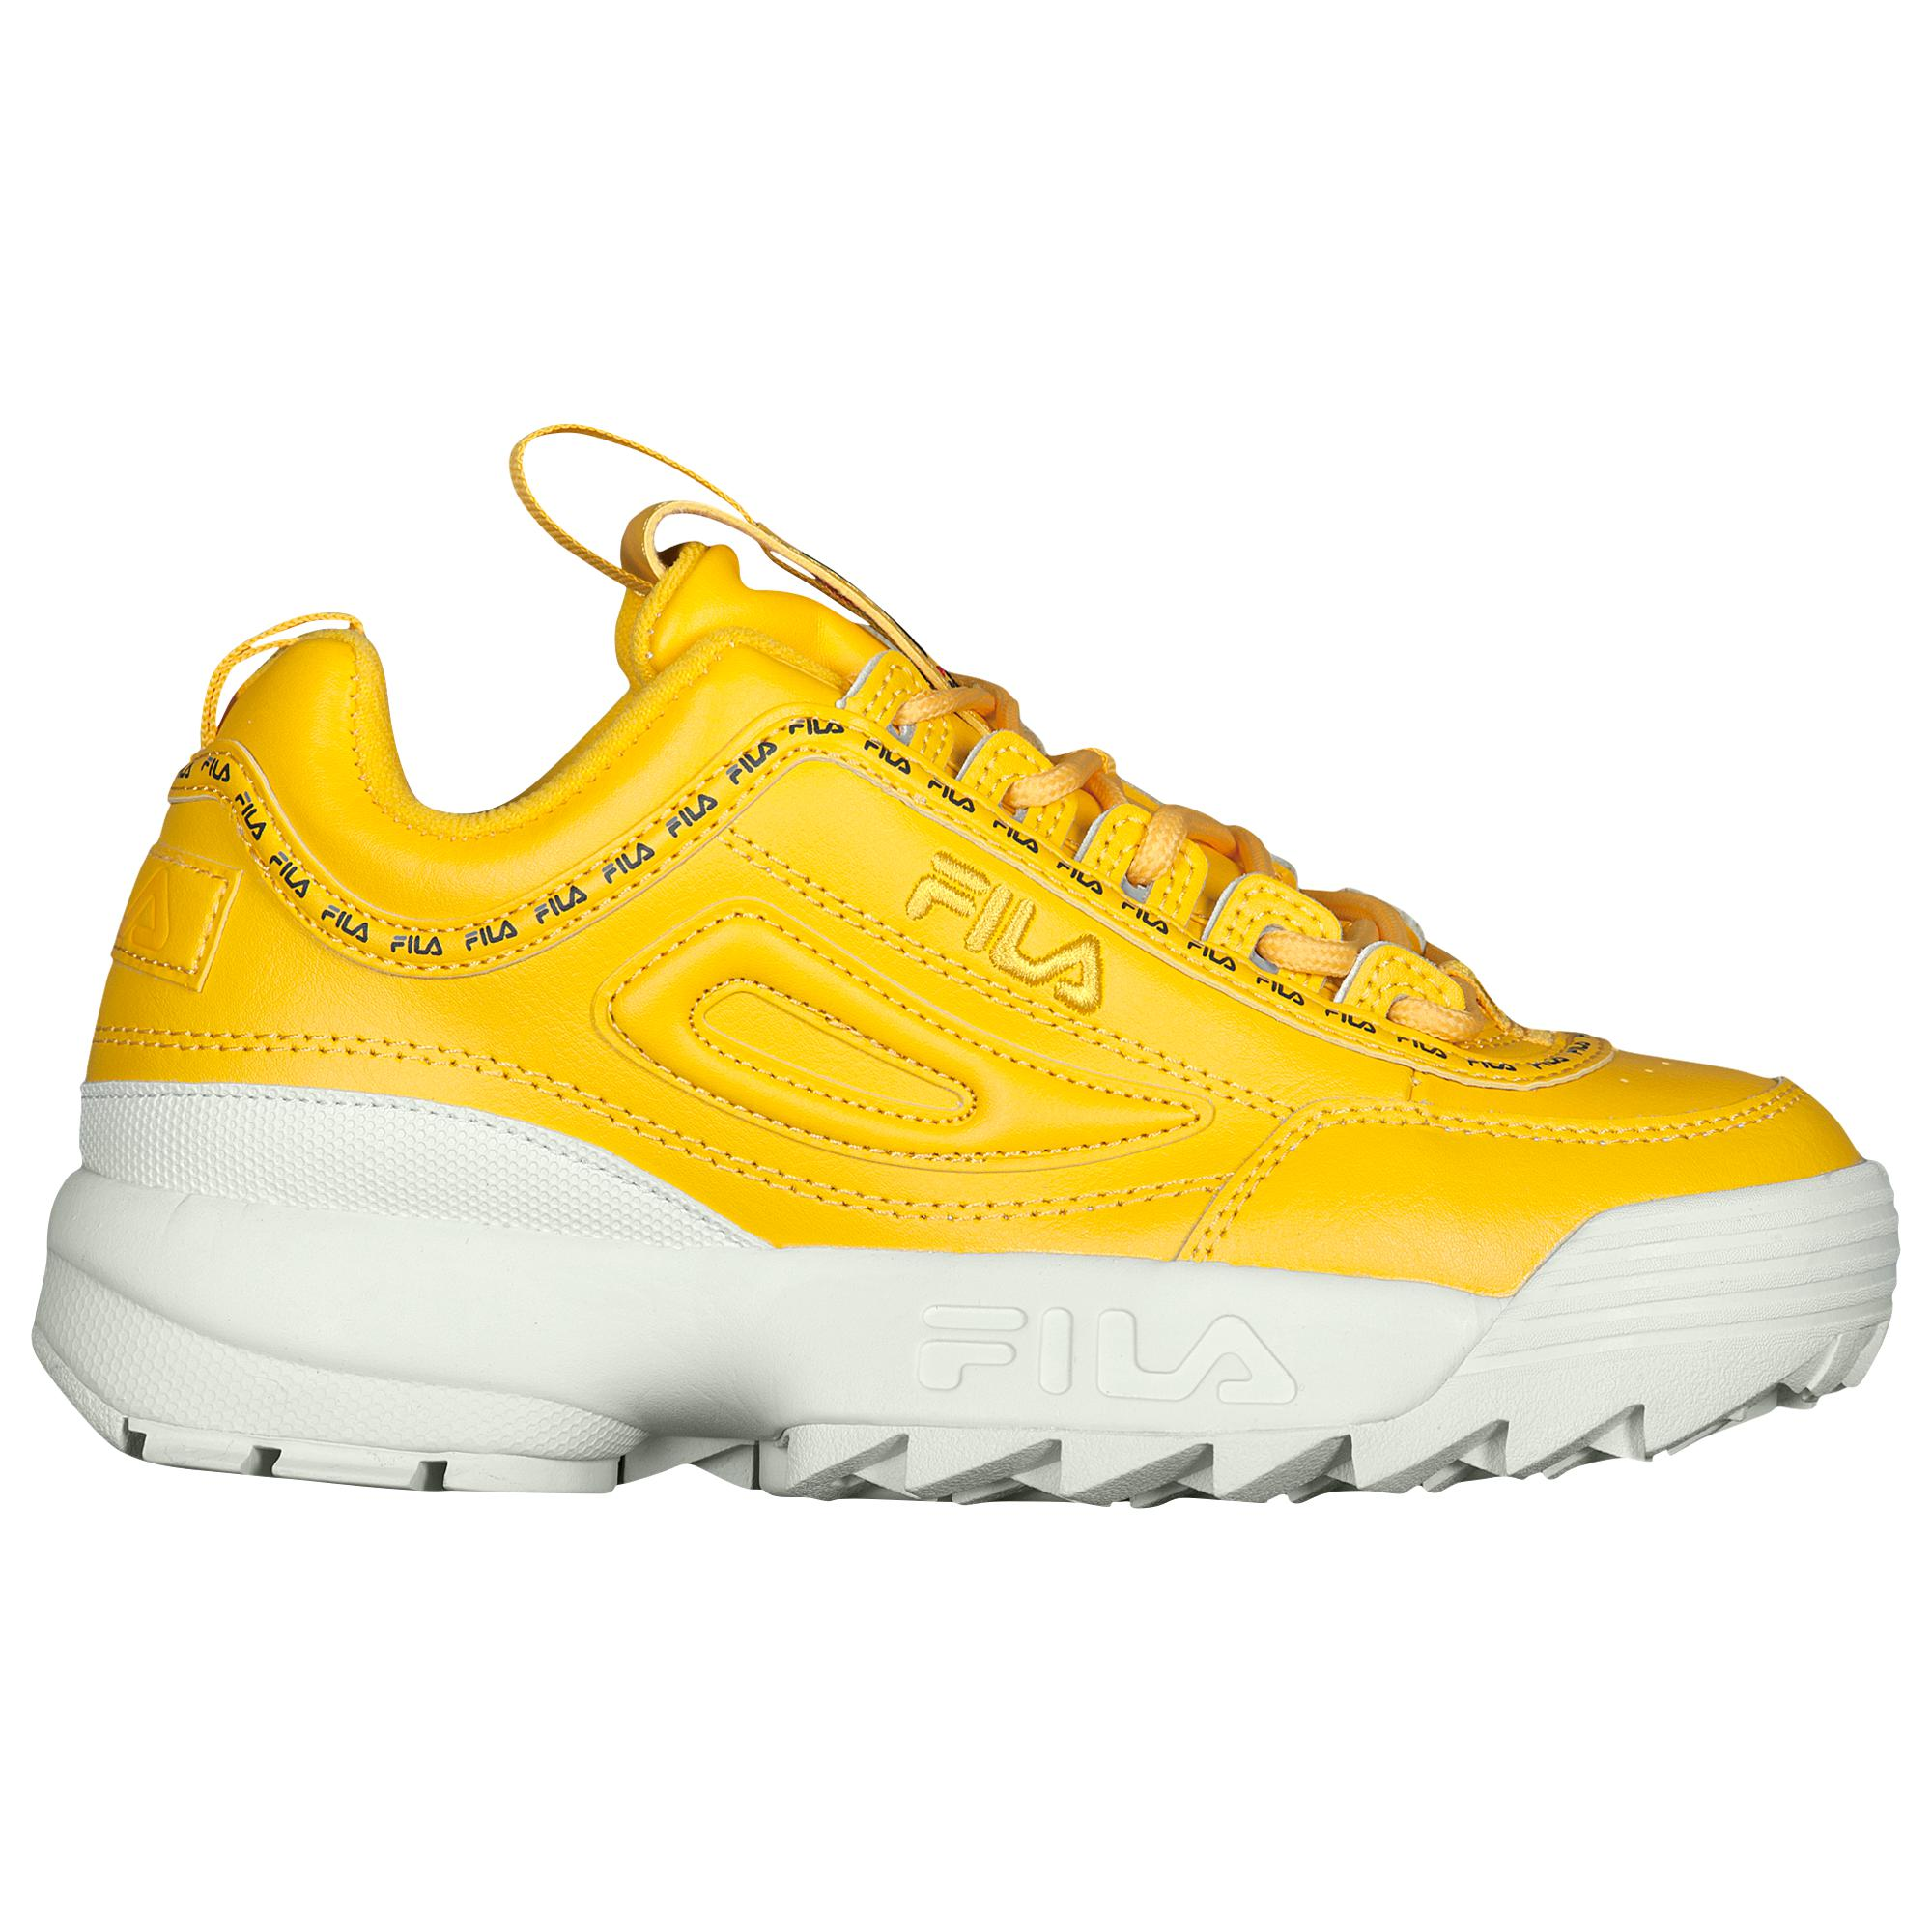 db1899c13e82 Fila - Yellow Disruptor Ii Premium Repeat - Lyst. View fullscreen